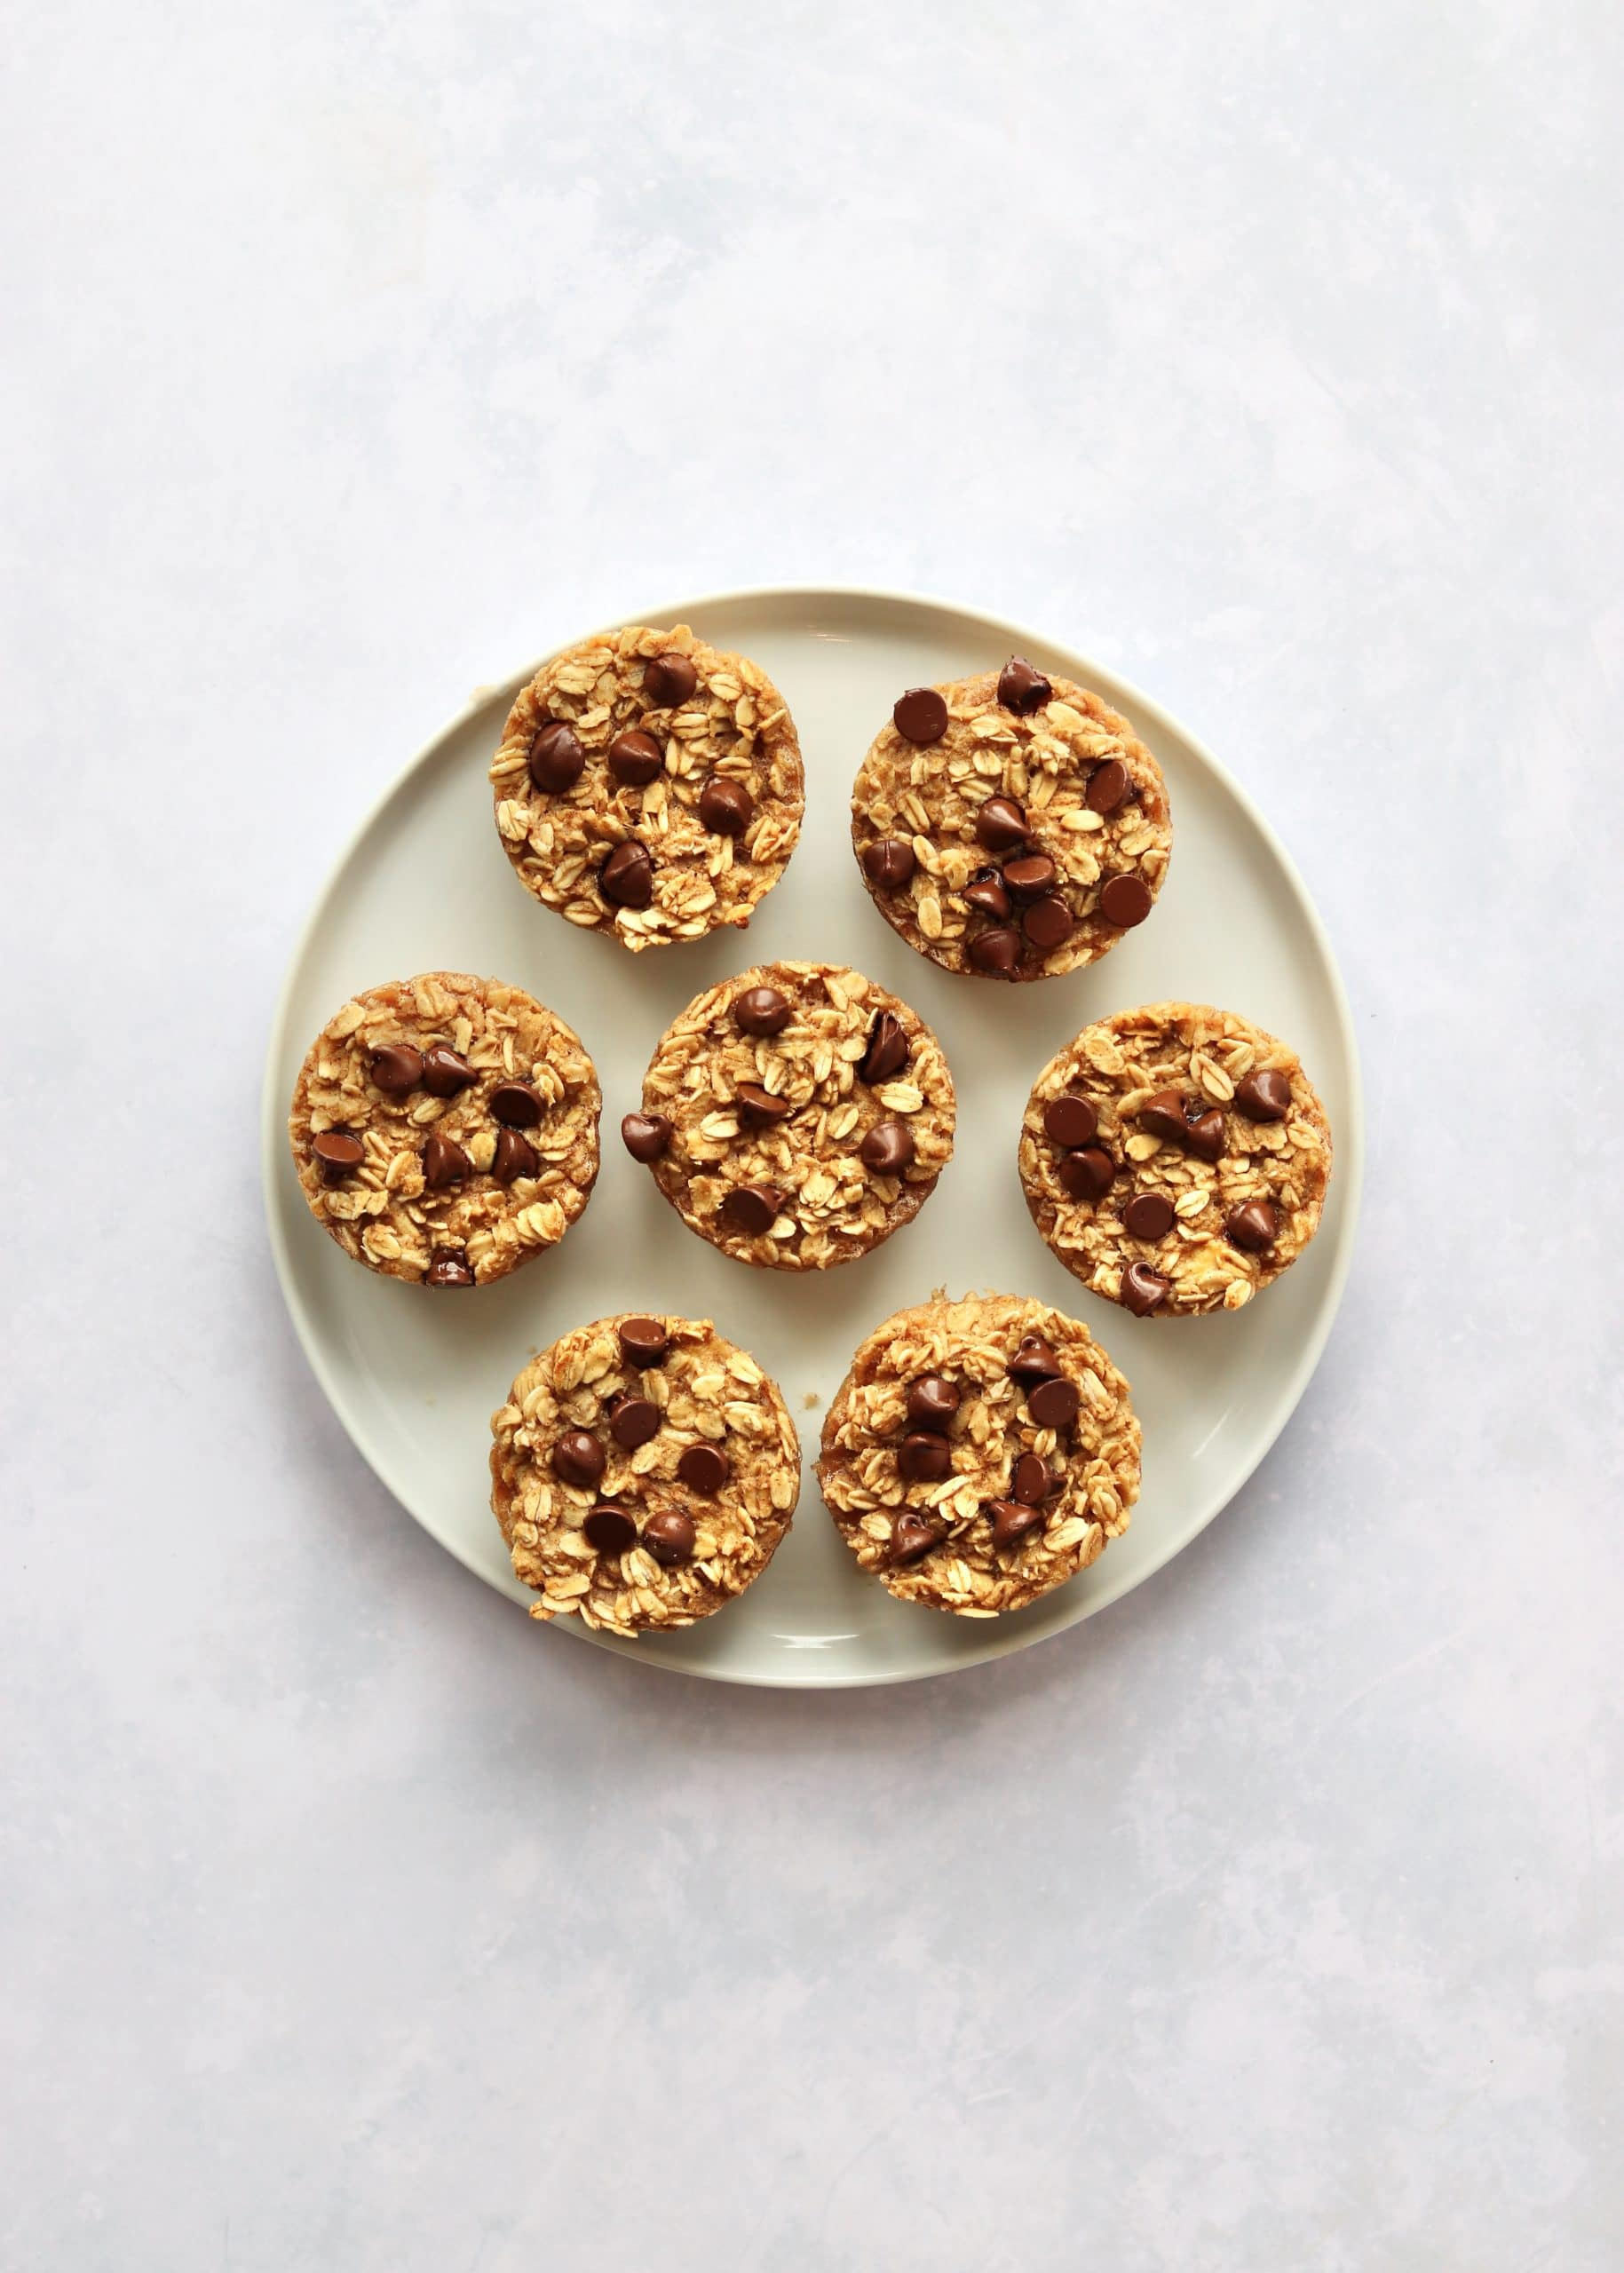 Baked banana oatmeal cups on plate